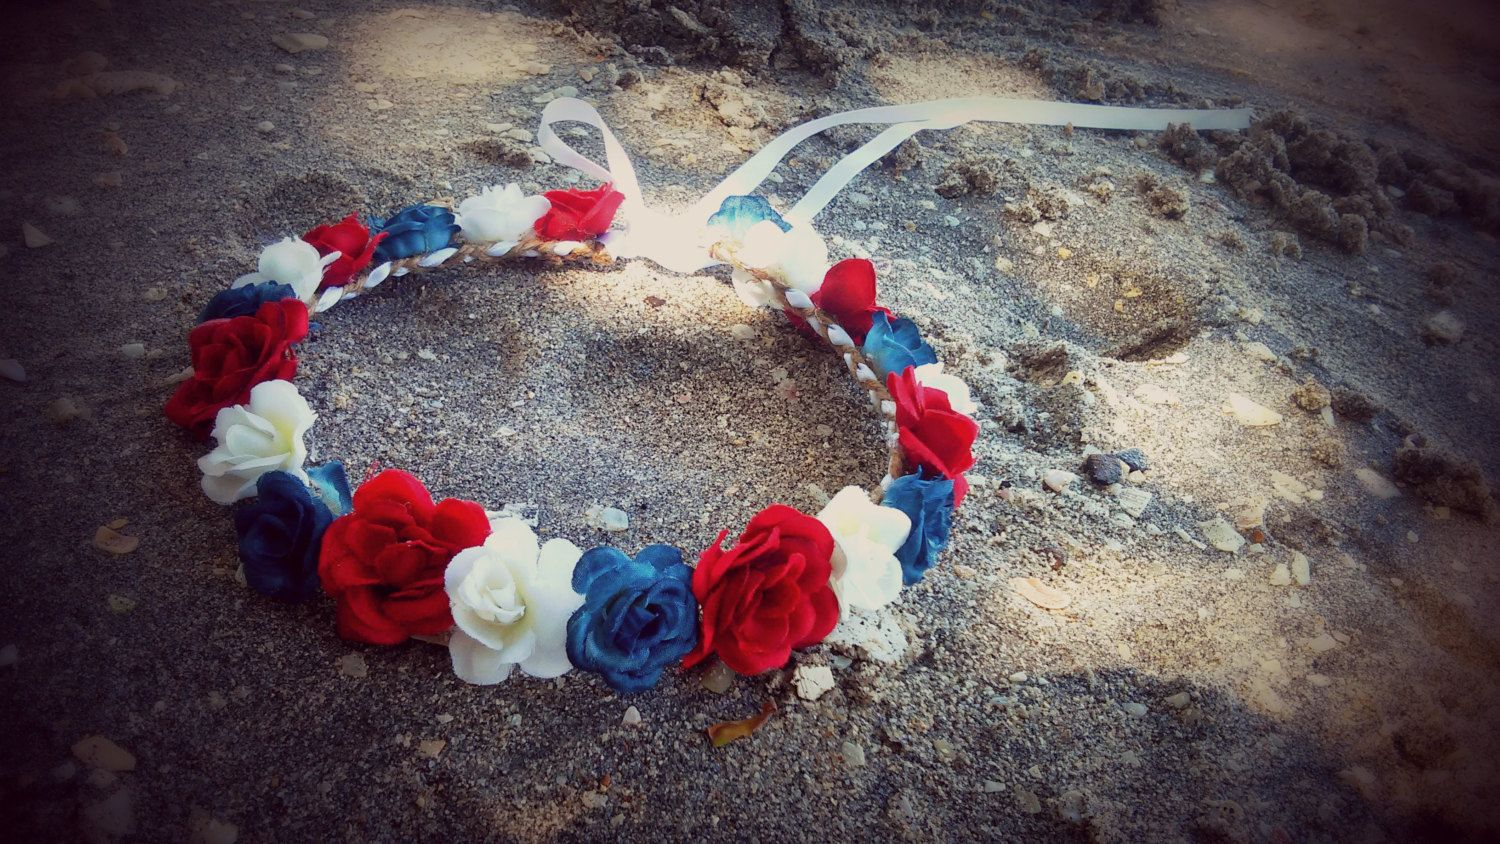 New to dieselboutique on Etsy: red white and blue Rose crown headband Flower 4th of july plur Festival Coachella stagecoach team colors patriots rave edm (22.99 USD)